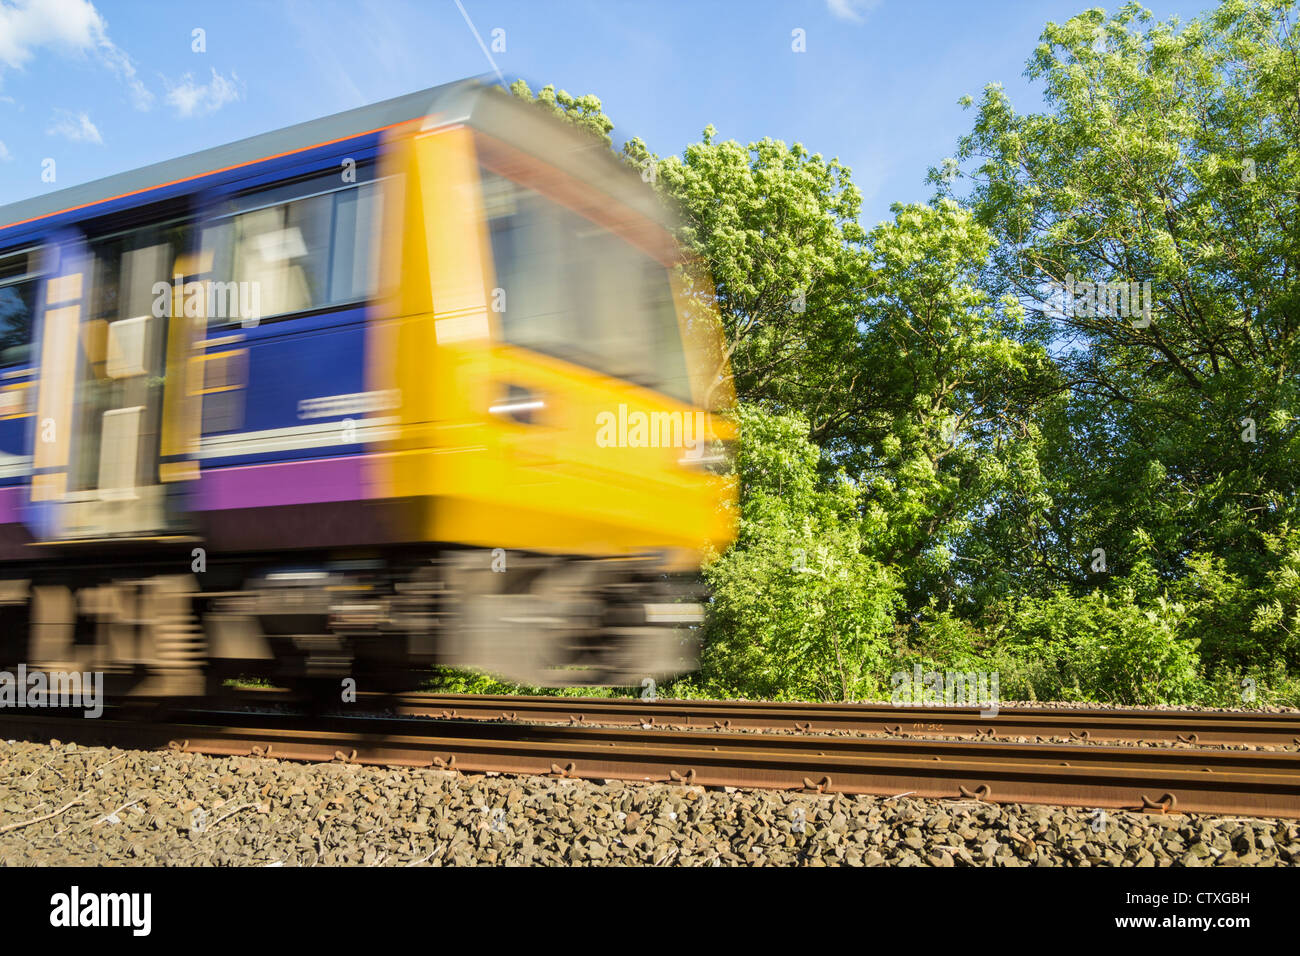 Northern Rail train on the East coast line between Newcastle and Middlesbrough, England, - Stock Image